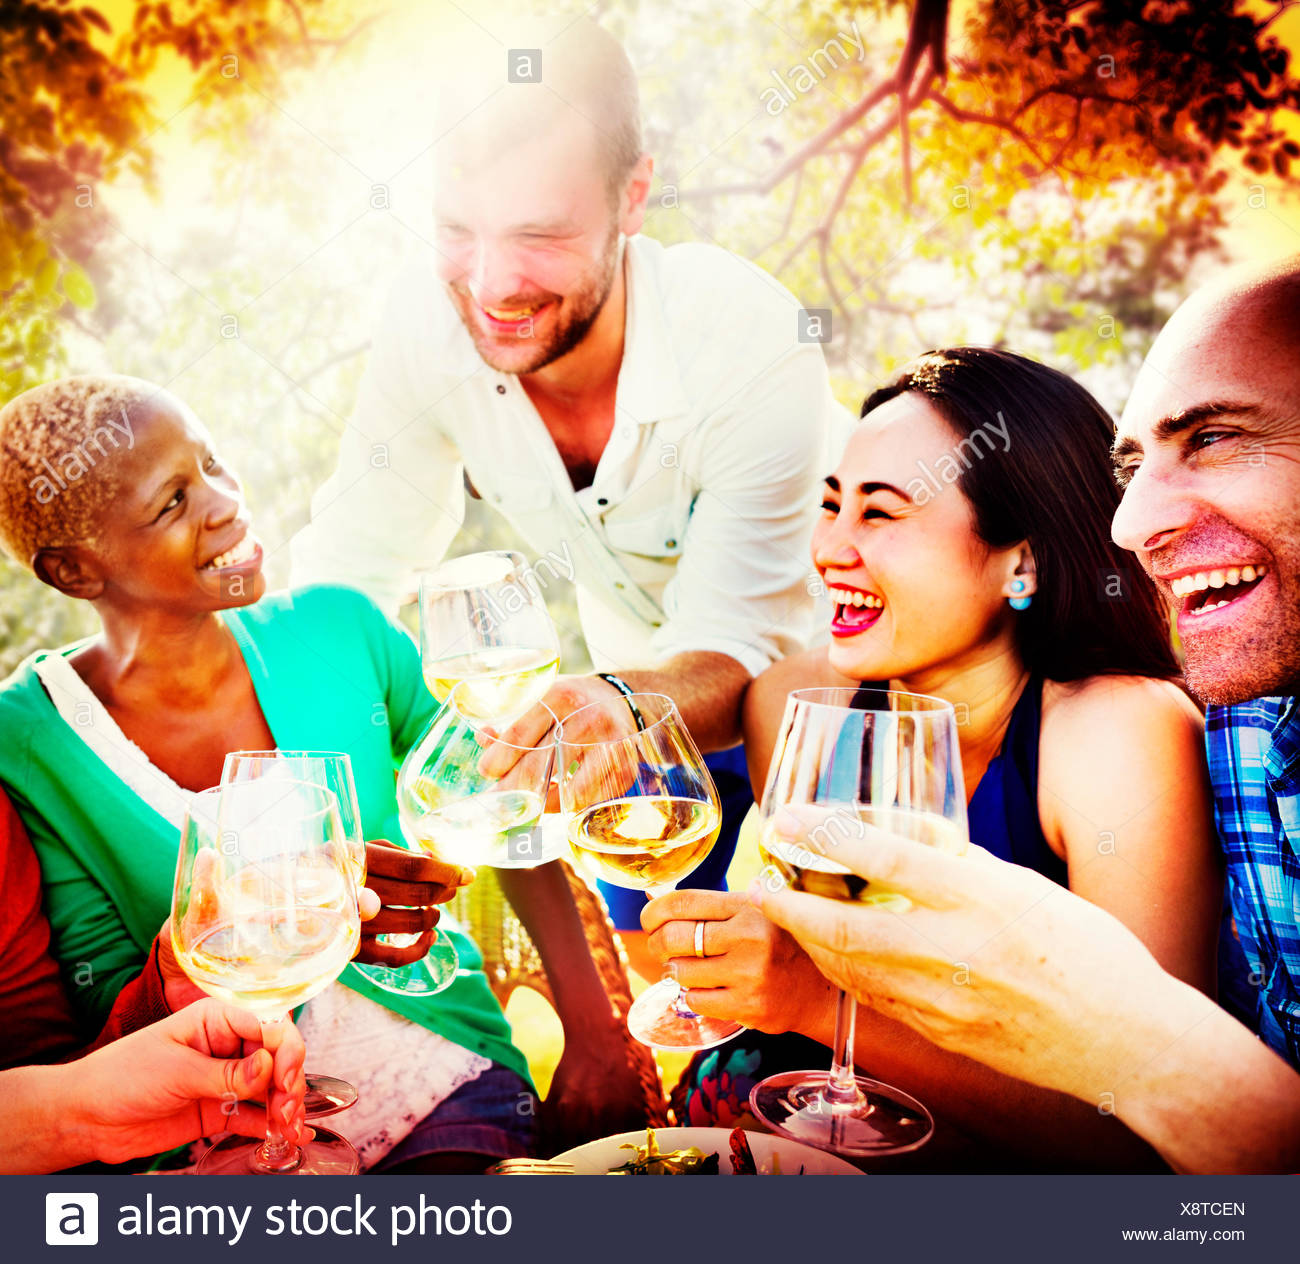 Friends Friendship Outdoor Chilling Togetherness Concept - Stock Image